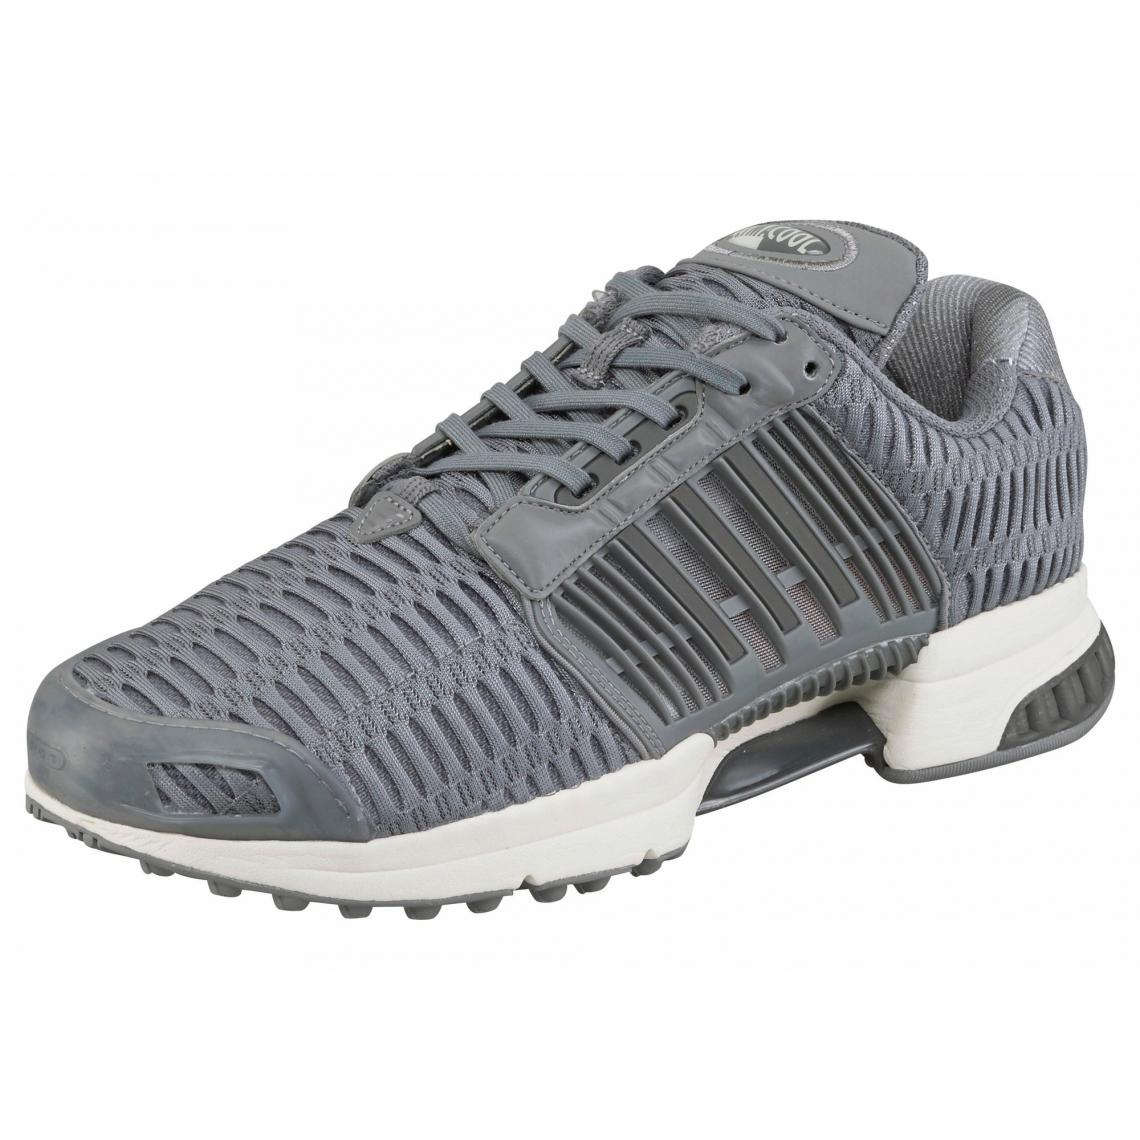 471dced22adc1 Baskets sport homme adidas Performance Clima Cool 1 - Gris Adidas Originals  Homme